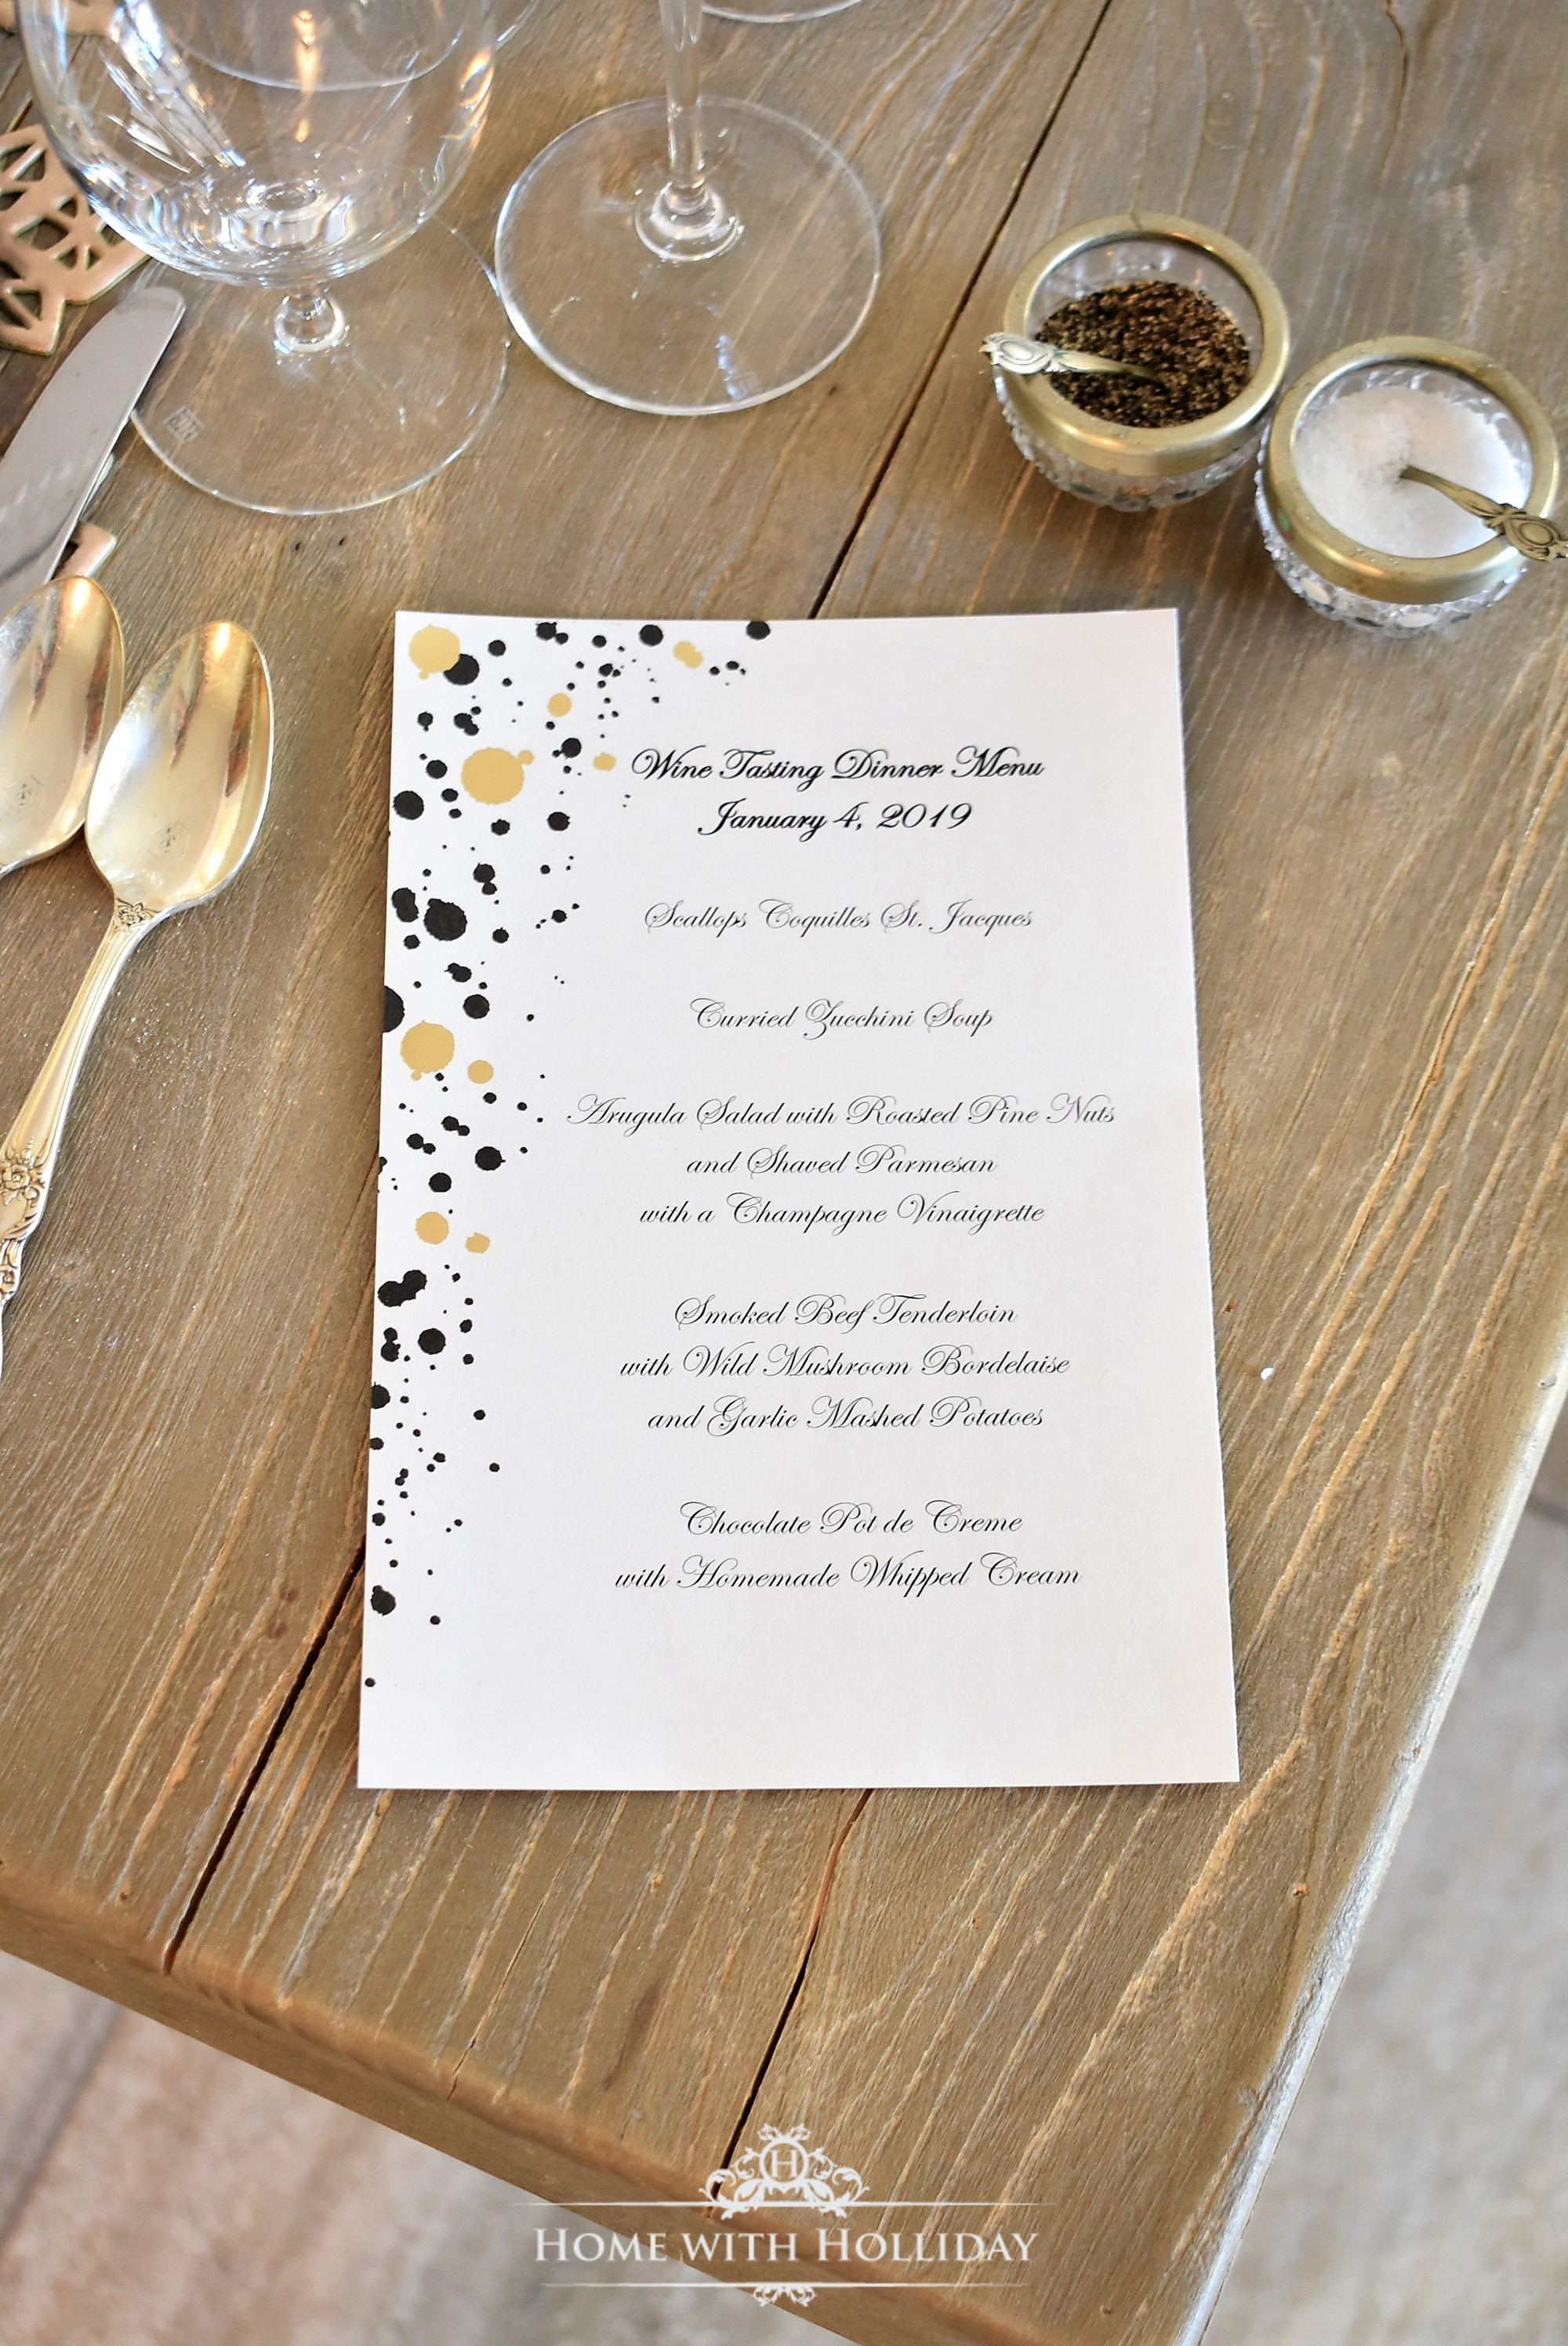 Menu for a Wine Tasting Dinner Party for New Year's Eve or Valentine's Day - Home with Holliday